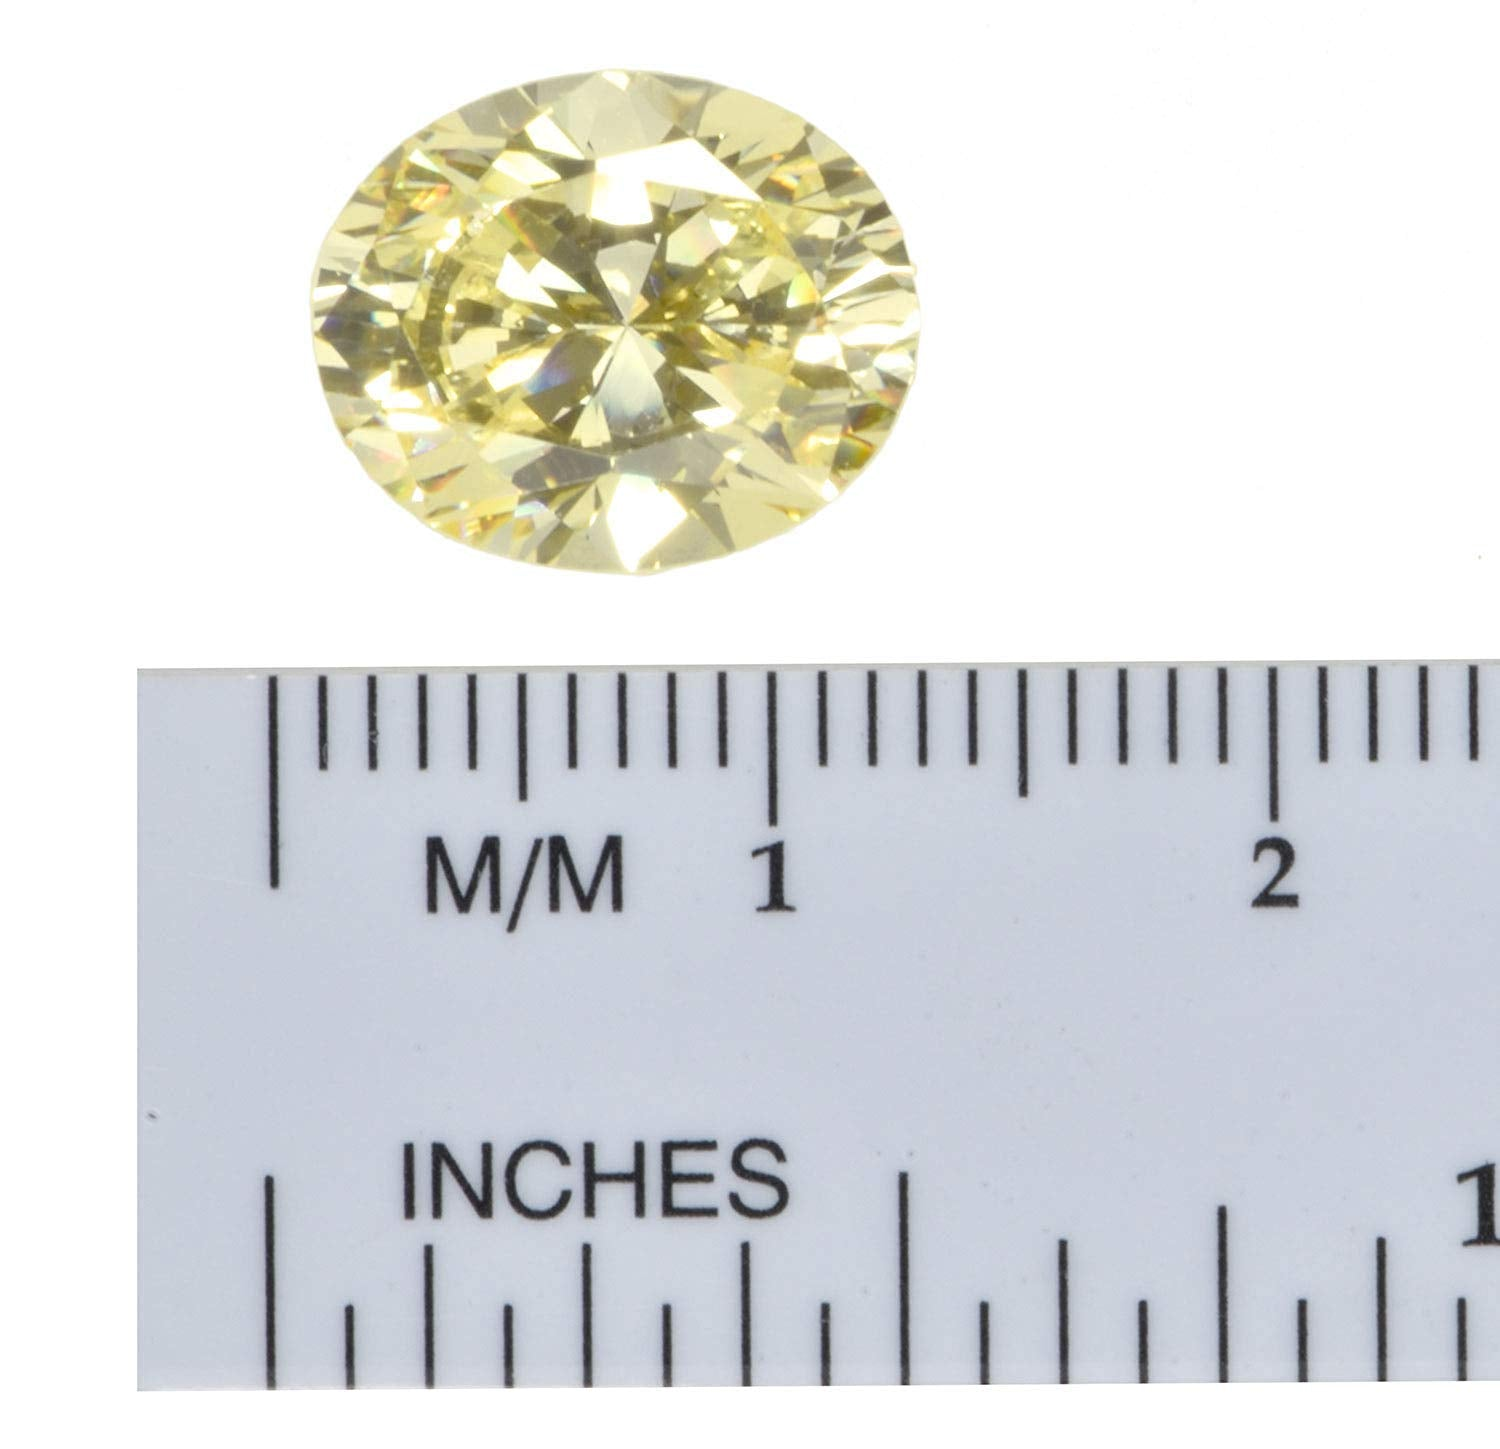 uGems Cz Canary Yellow Oval Unset Gemstone 12 X 10mm (1)